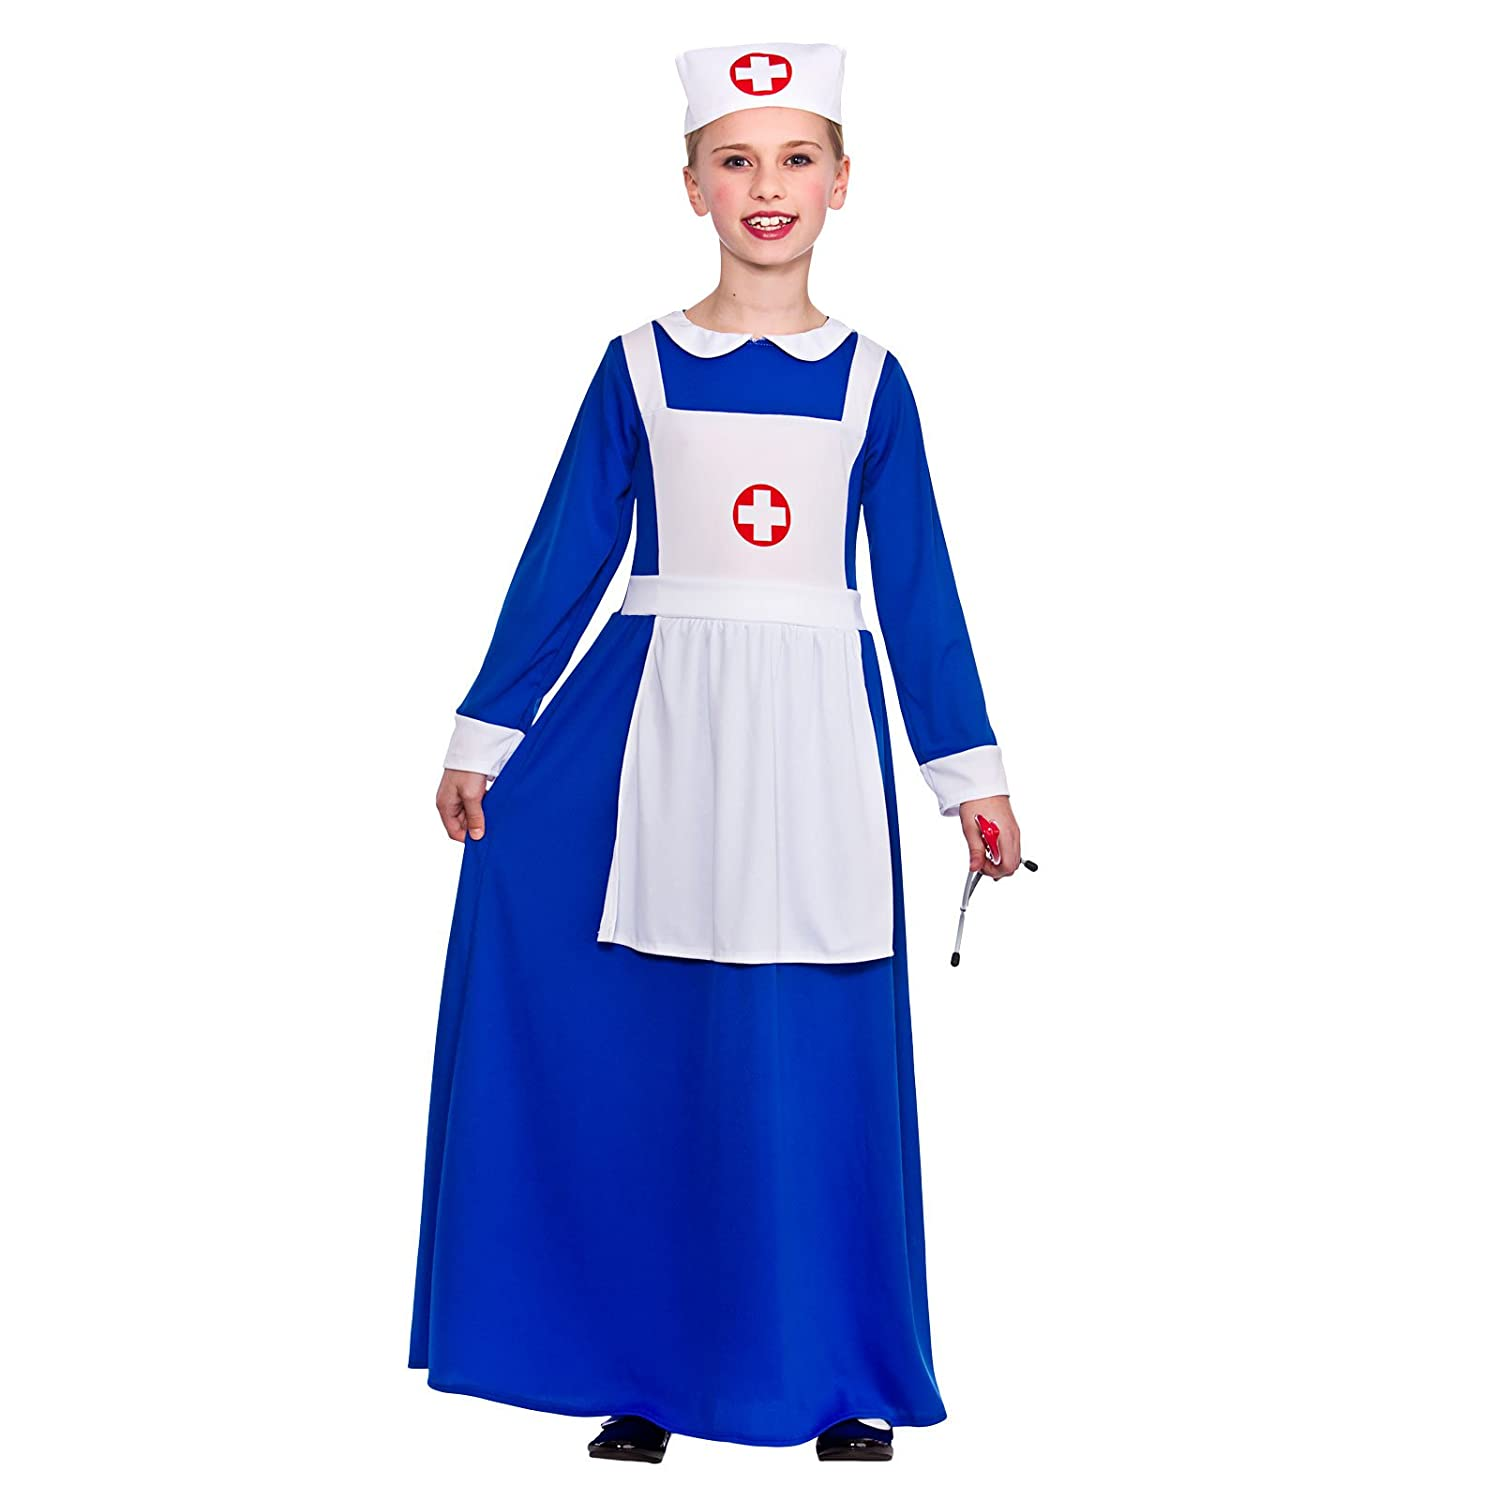 32f3a9466d7c1 Girls Wartime Nurse Fancy Dress Up Party Costume Halloween Child Outfit  Blue New: Amazon.co.uk: Toys & Games